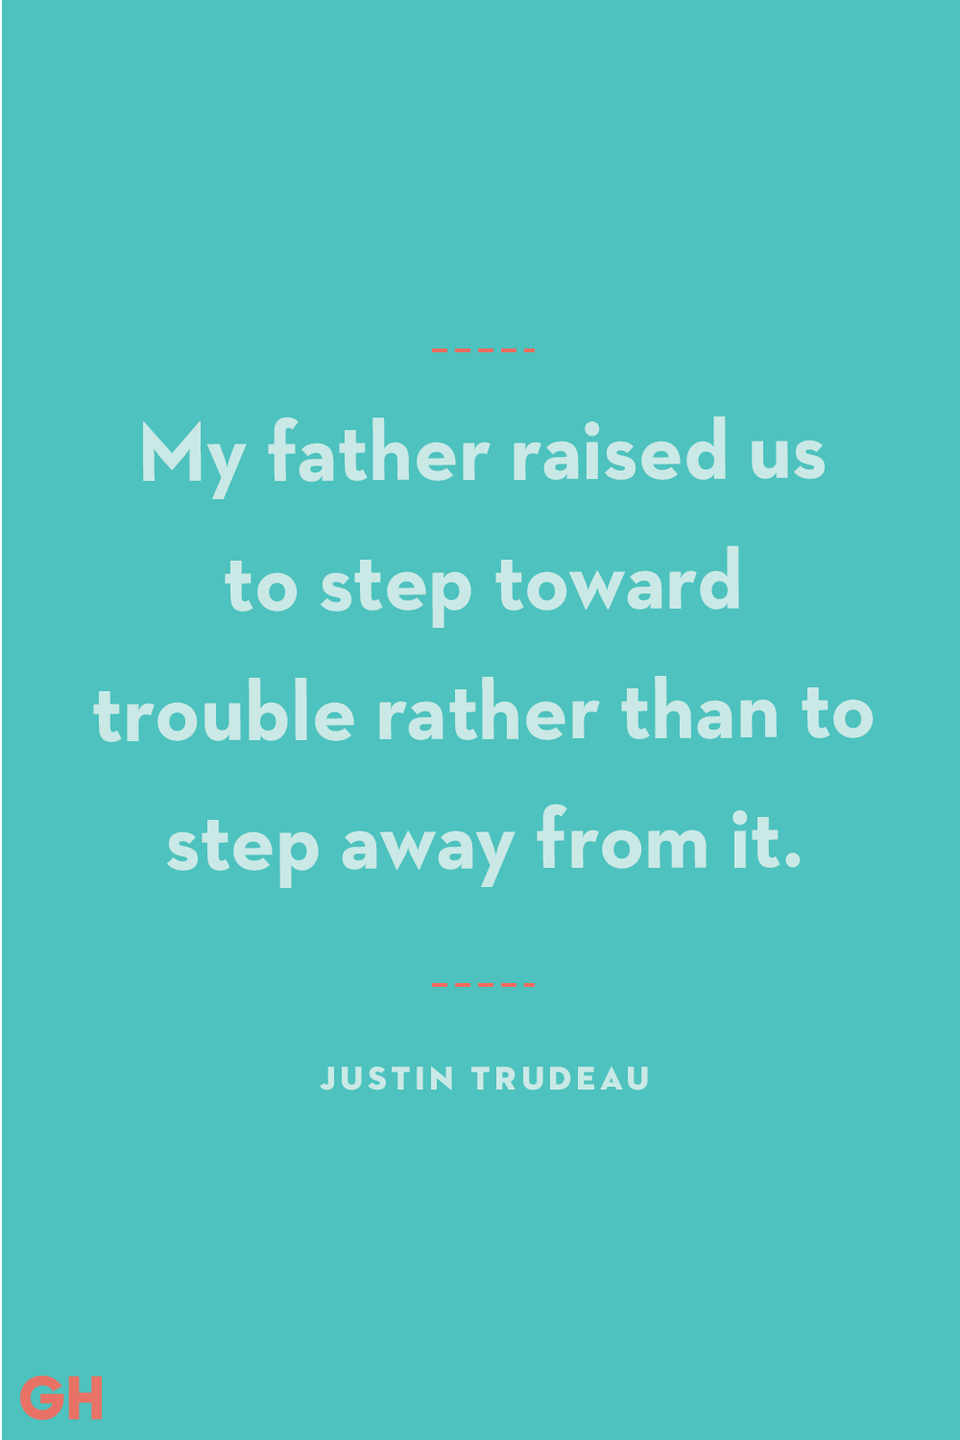 """<p>My father raised us to step toward trouble rather than to step away from it.</p><p><strong>RELATED:</strong> <a href=""""https://www.goodhousekeeping.com/holidays/fathers-day/g21271459/gifts-for-dad-who-has-everything/"""" rel=""""nofollow noopener"""" target=""""_blank"""" data-ylk=""""slk:18 Unique Father's Day Gifts for the Dad Who Has Everything"""" class=""""link rapid-noclick-resp"""">18 Unique Father's Day Gifts for the Dad Who Has Everything</a></p>"""